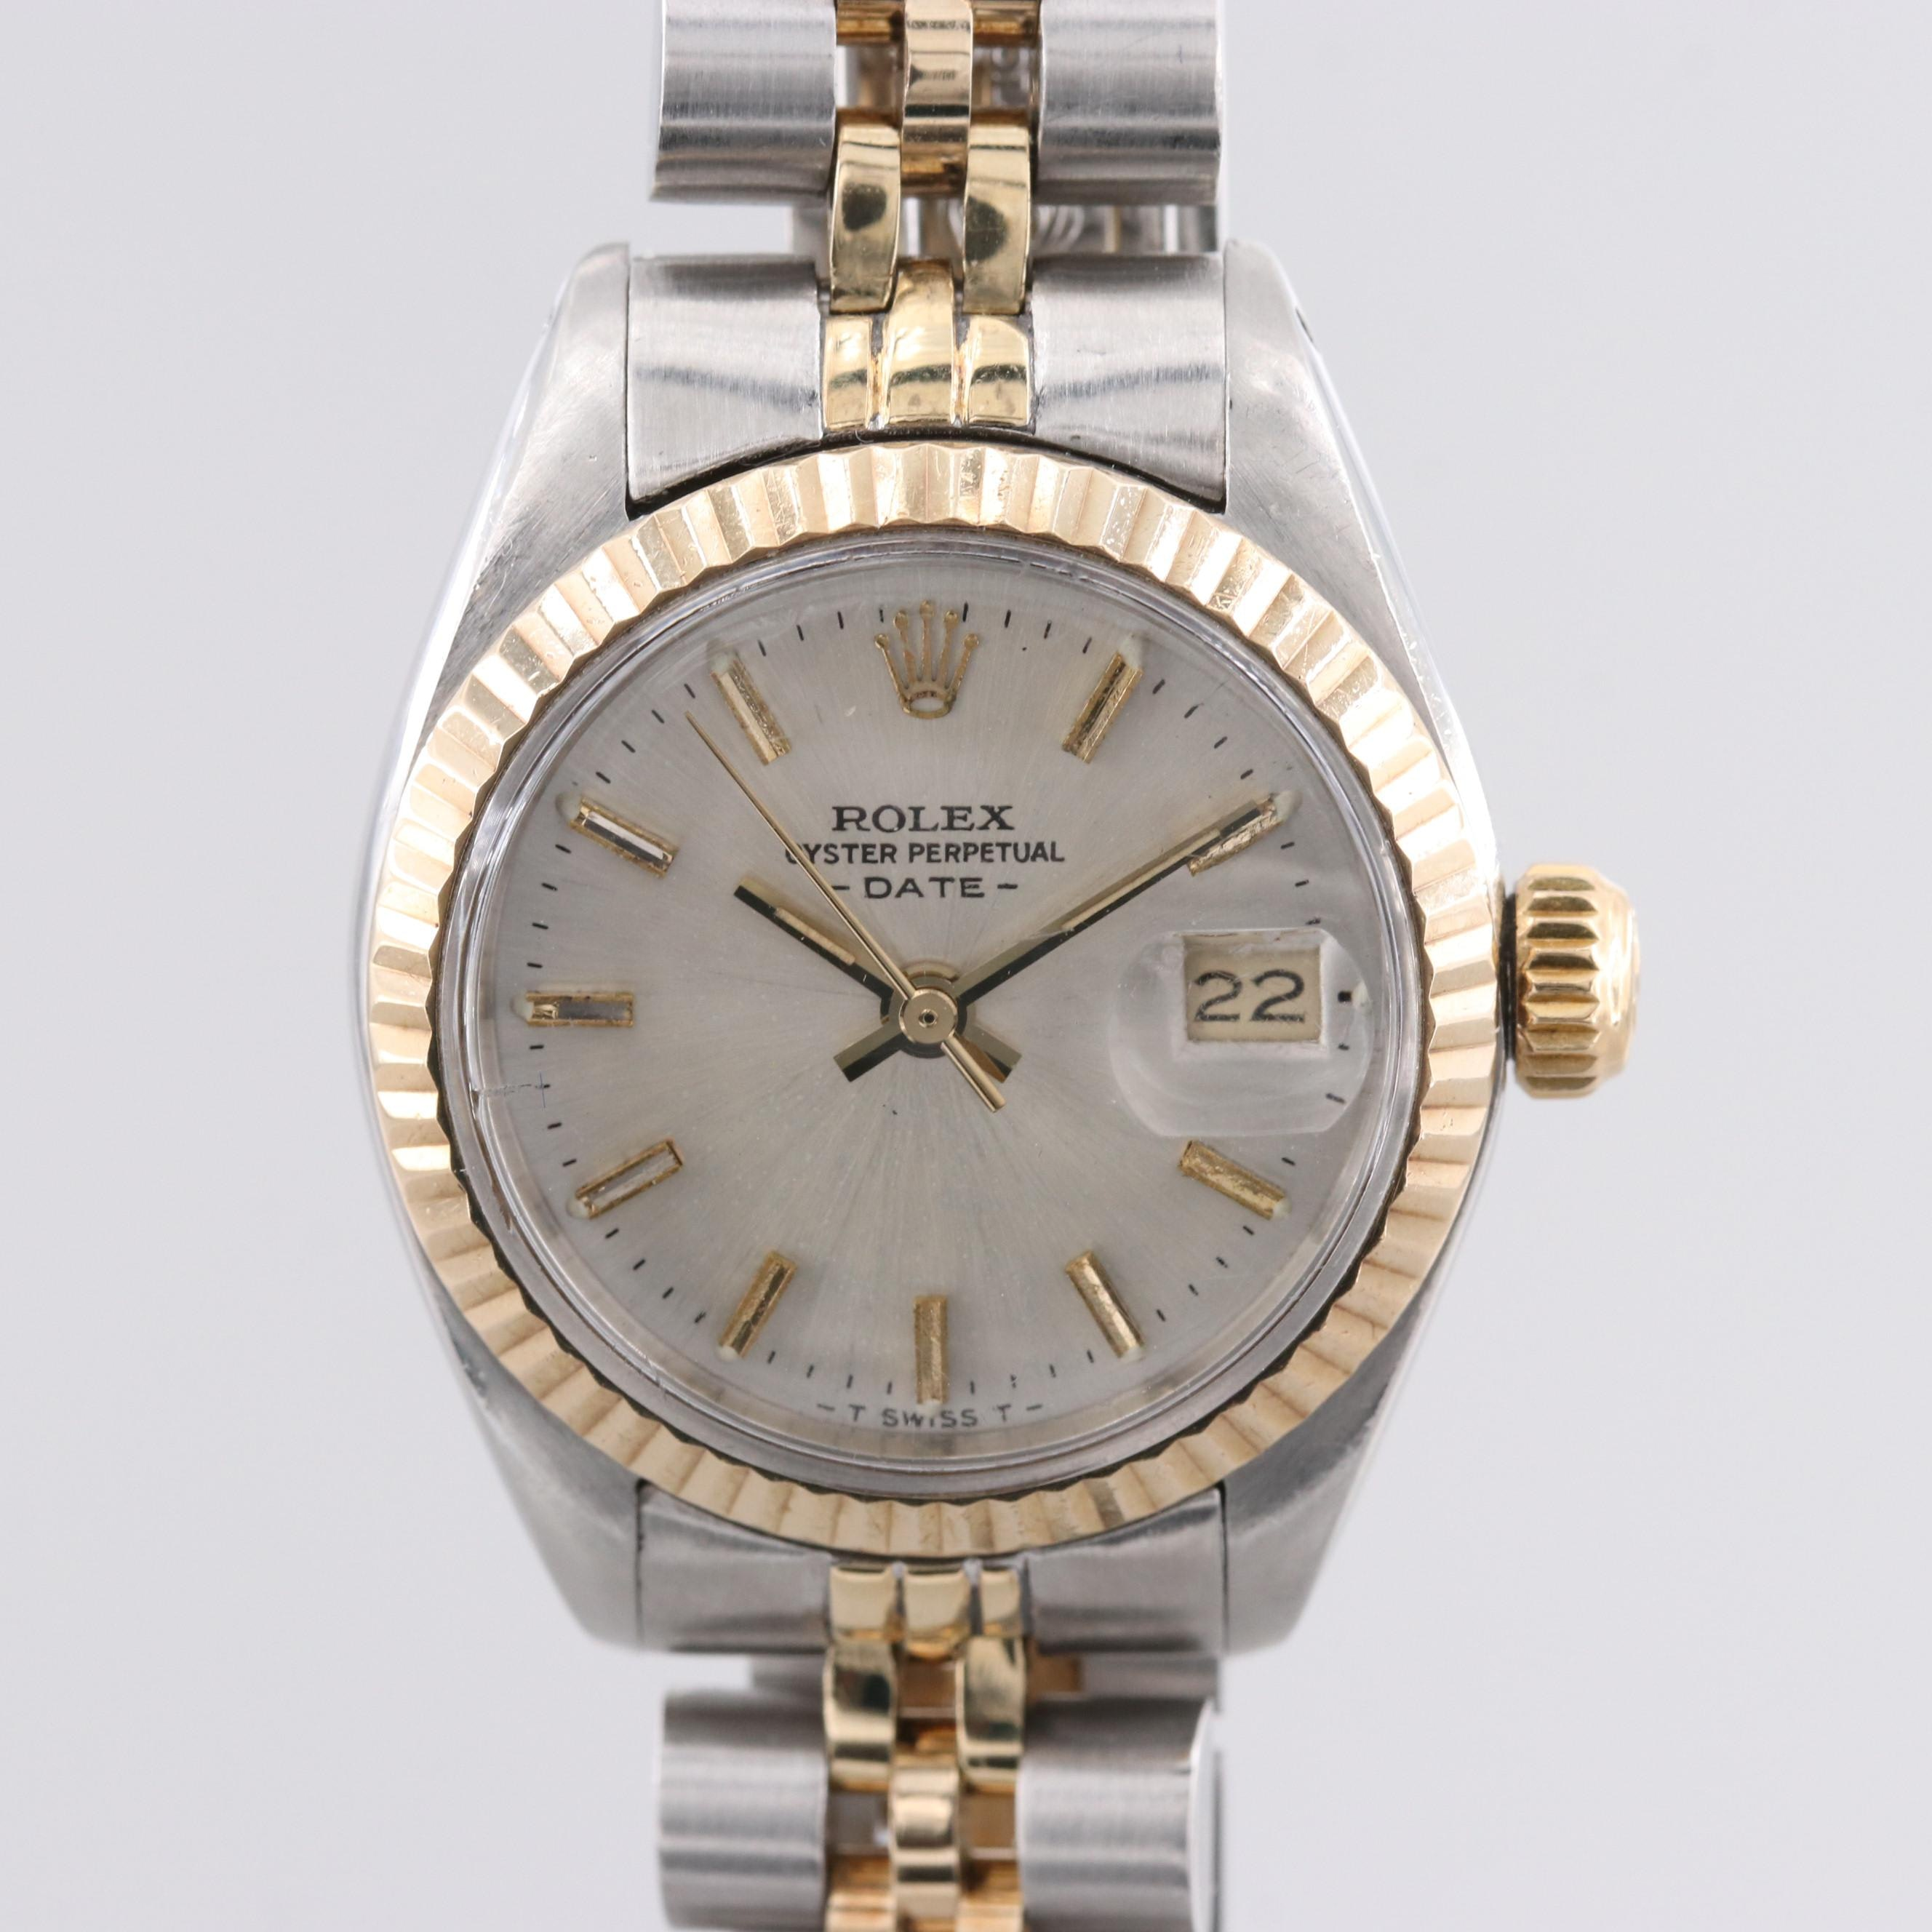 Rolex Oyster Perpetual Date Stainless Steel and 18K Yellow Gold Wristwatch, 1979